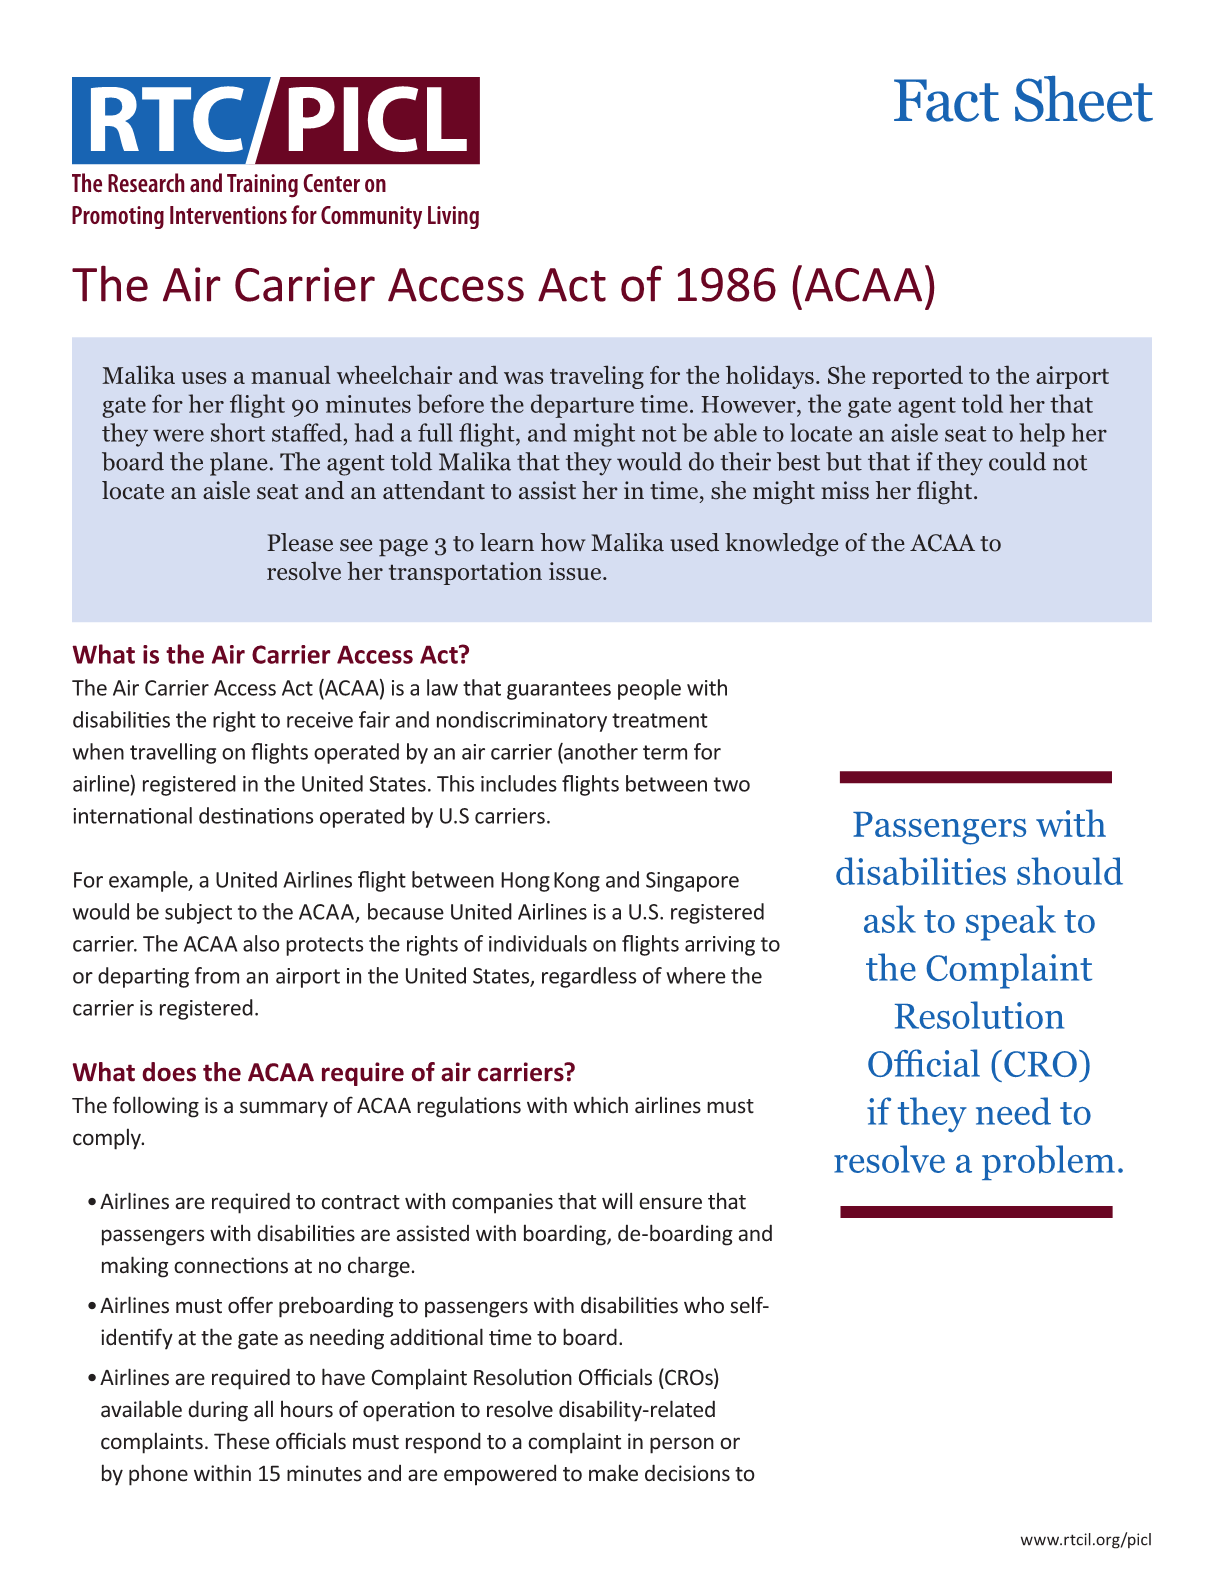 The Air Carrier Access Act of 1986 (ACAA)